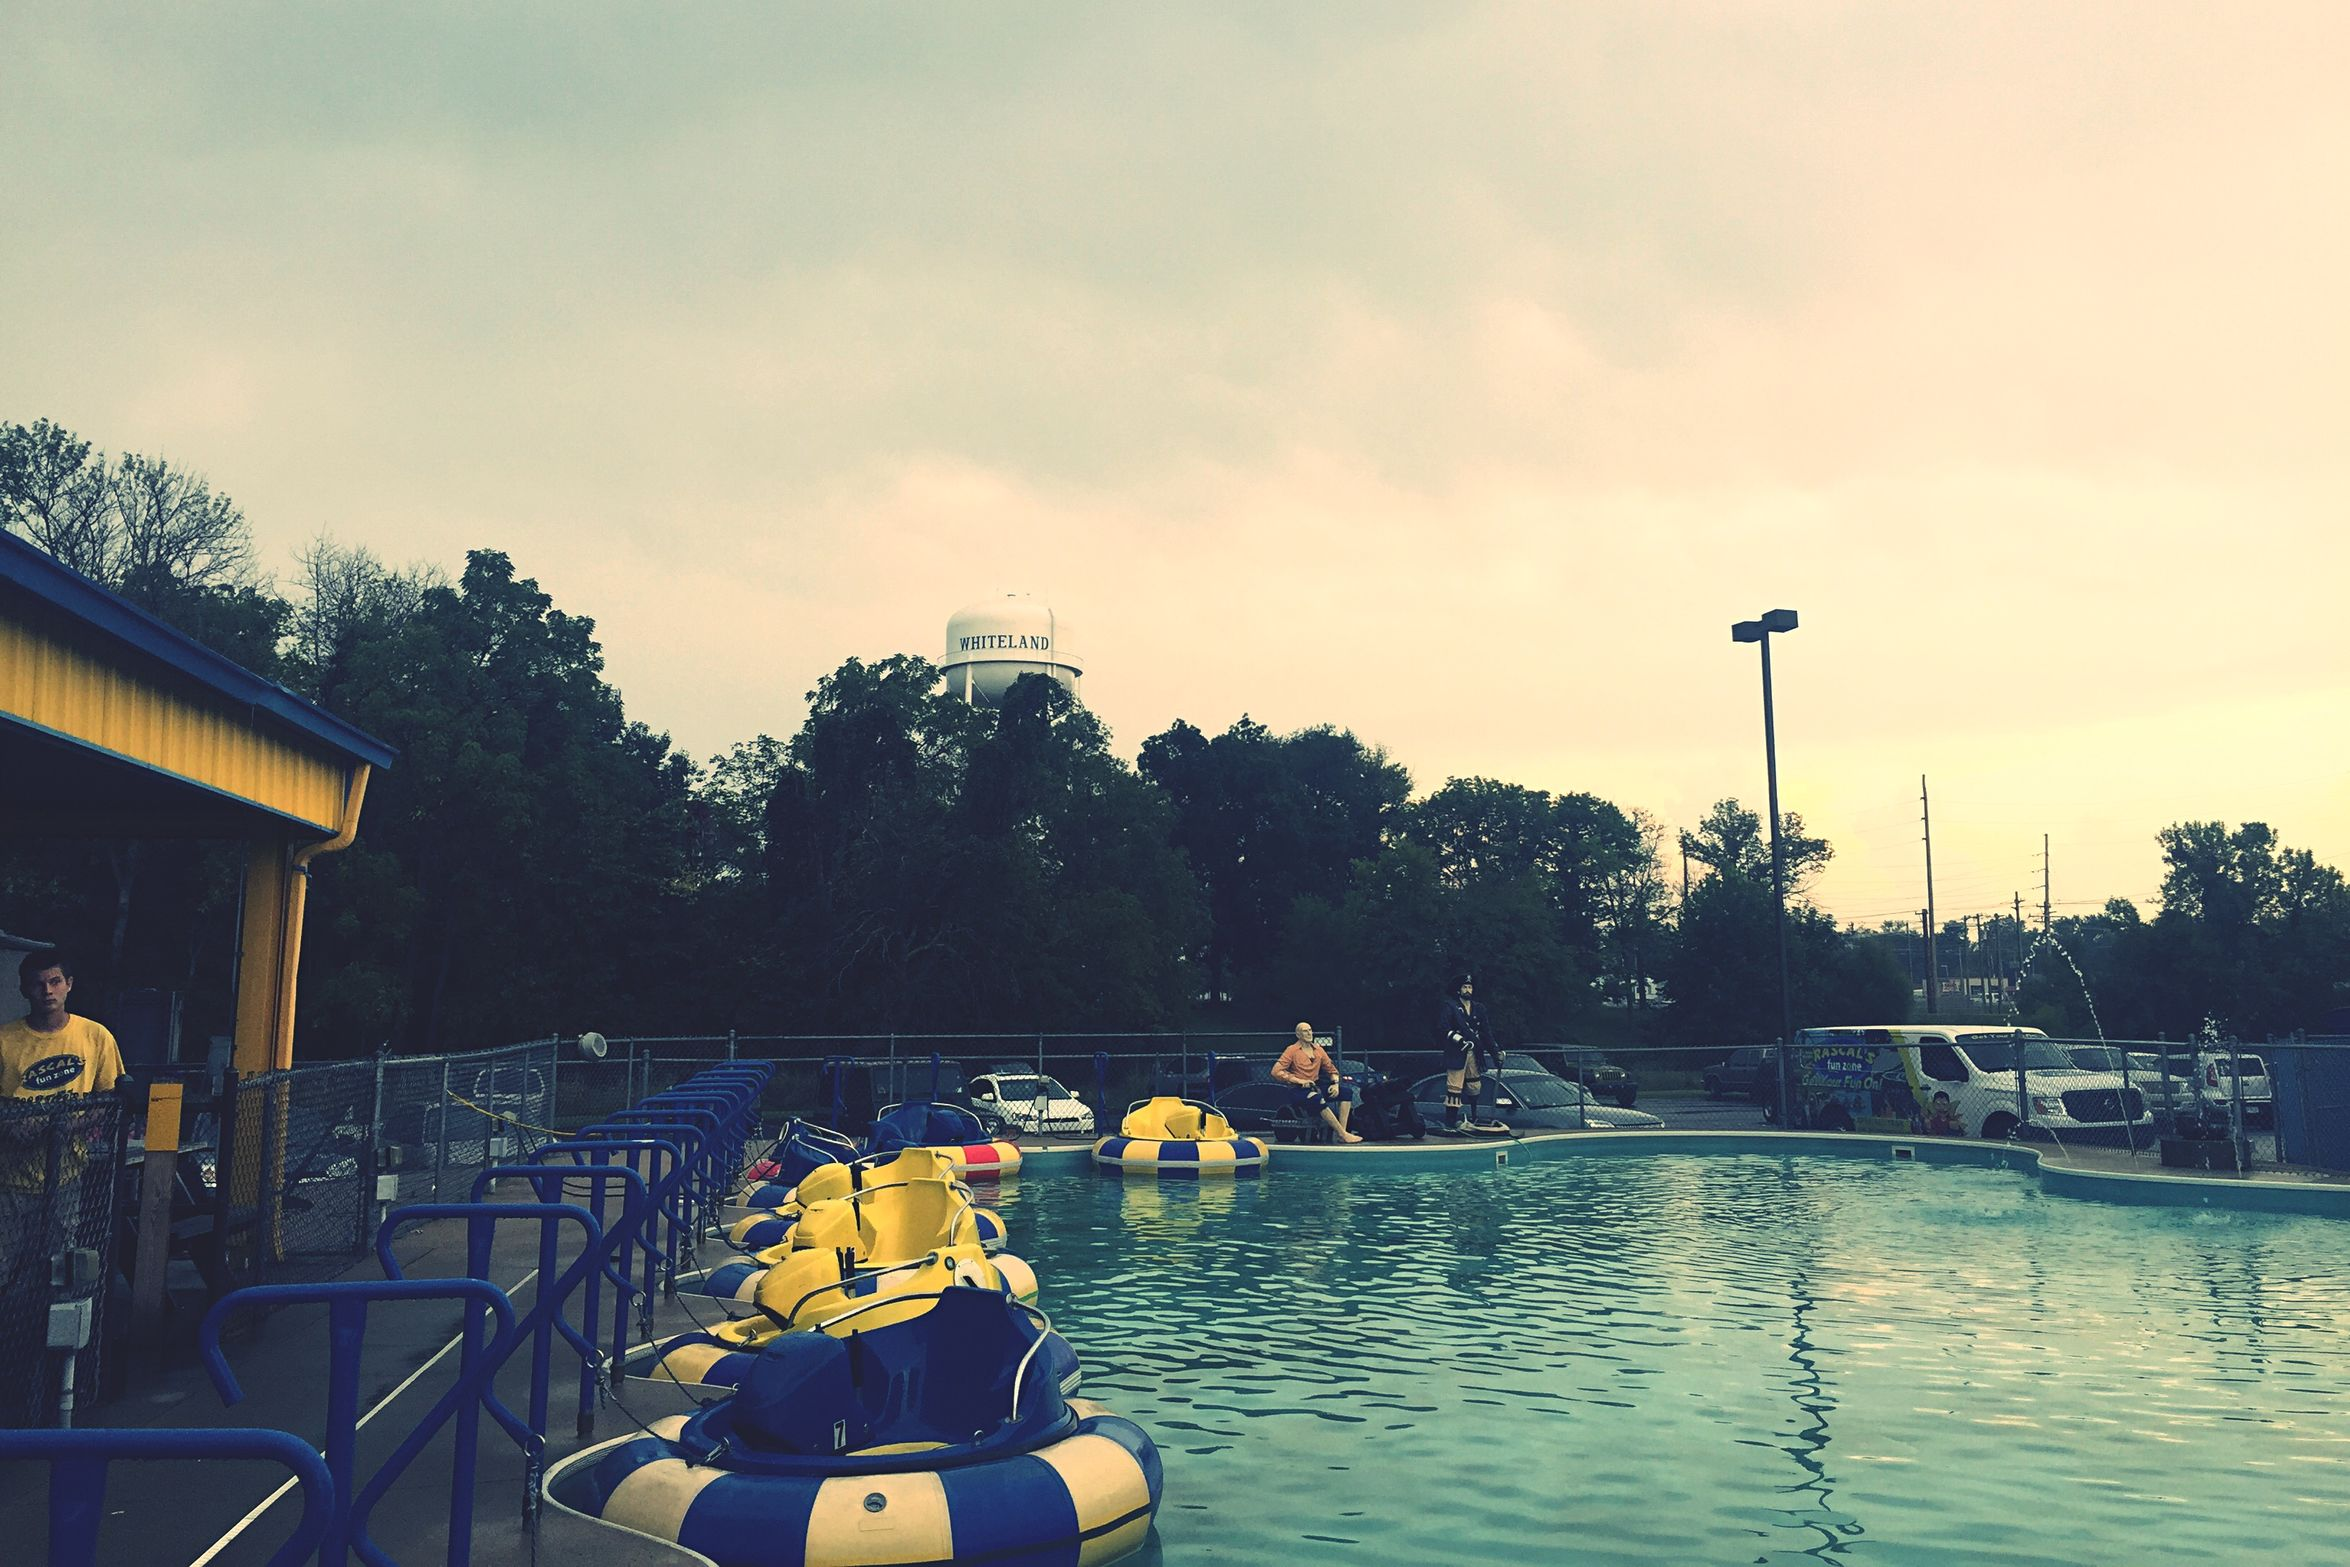 bumper Boats & the whiteland Water Tower